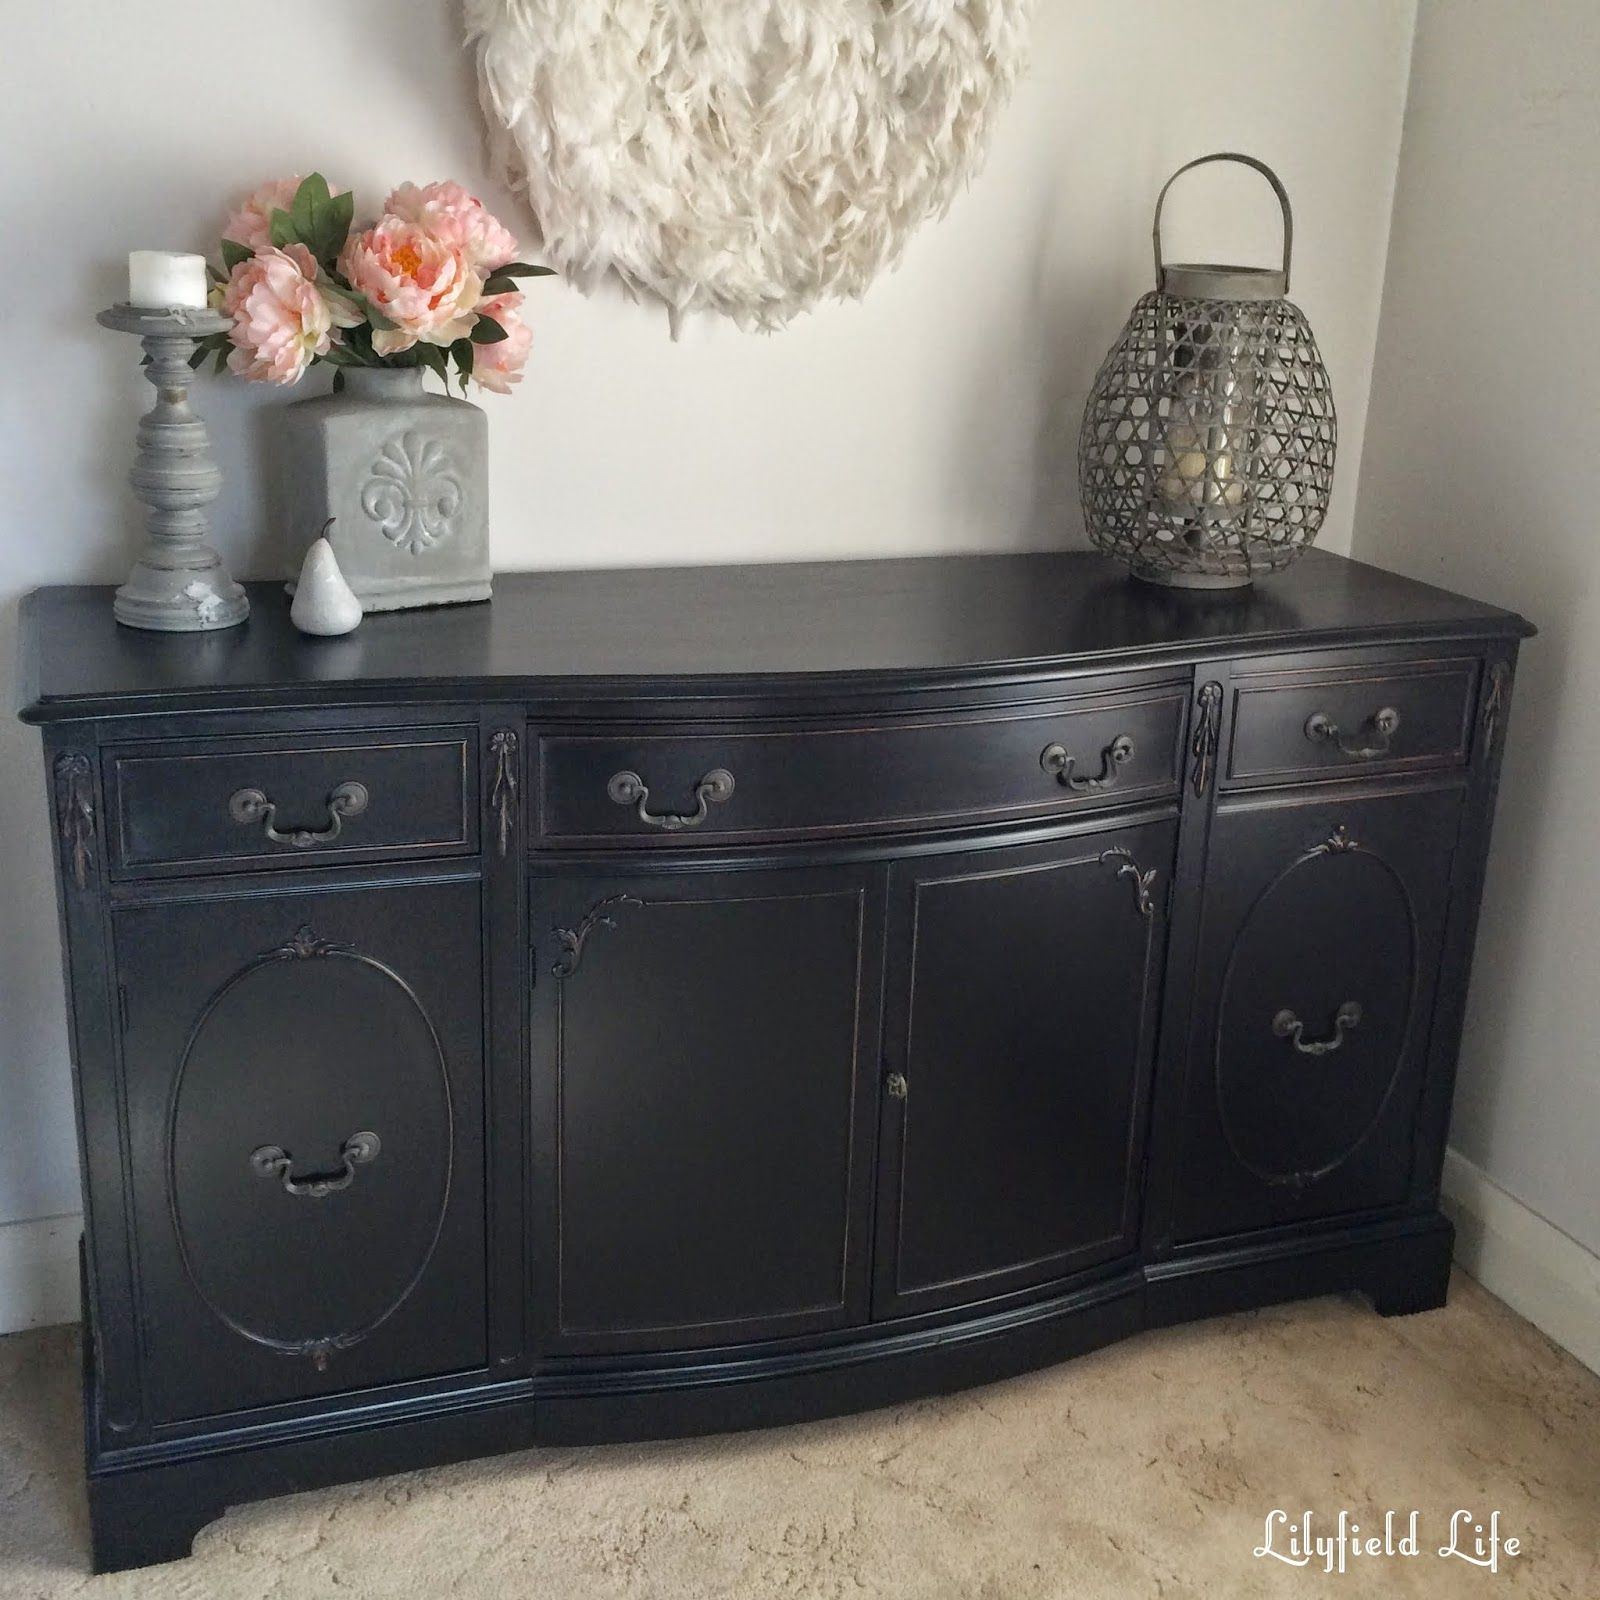 Painting furniture black distressed - How To Paint Furniture Black Sideboard Makeover By Lilyfield Life